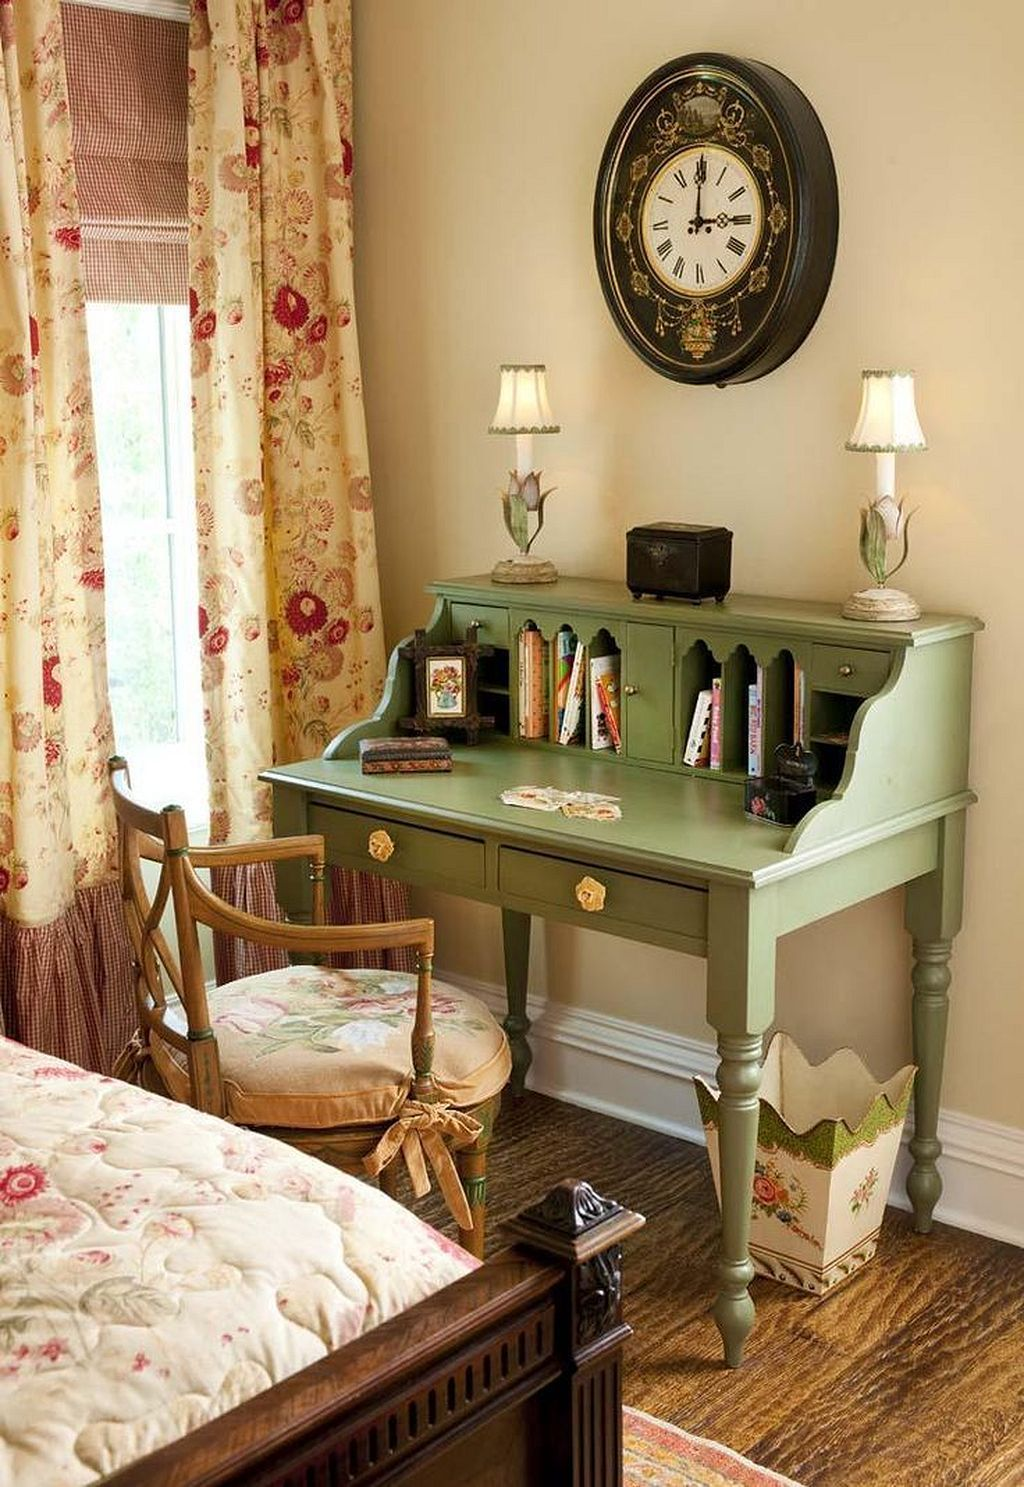 Photo of 18 Images of English Country Home Decor Ideas  Decor Inspiration.